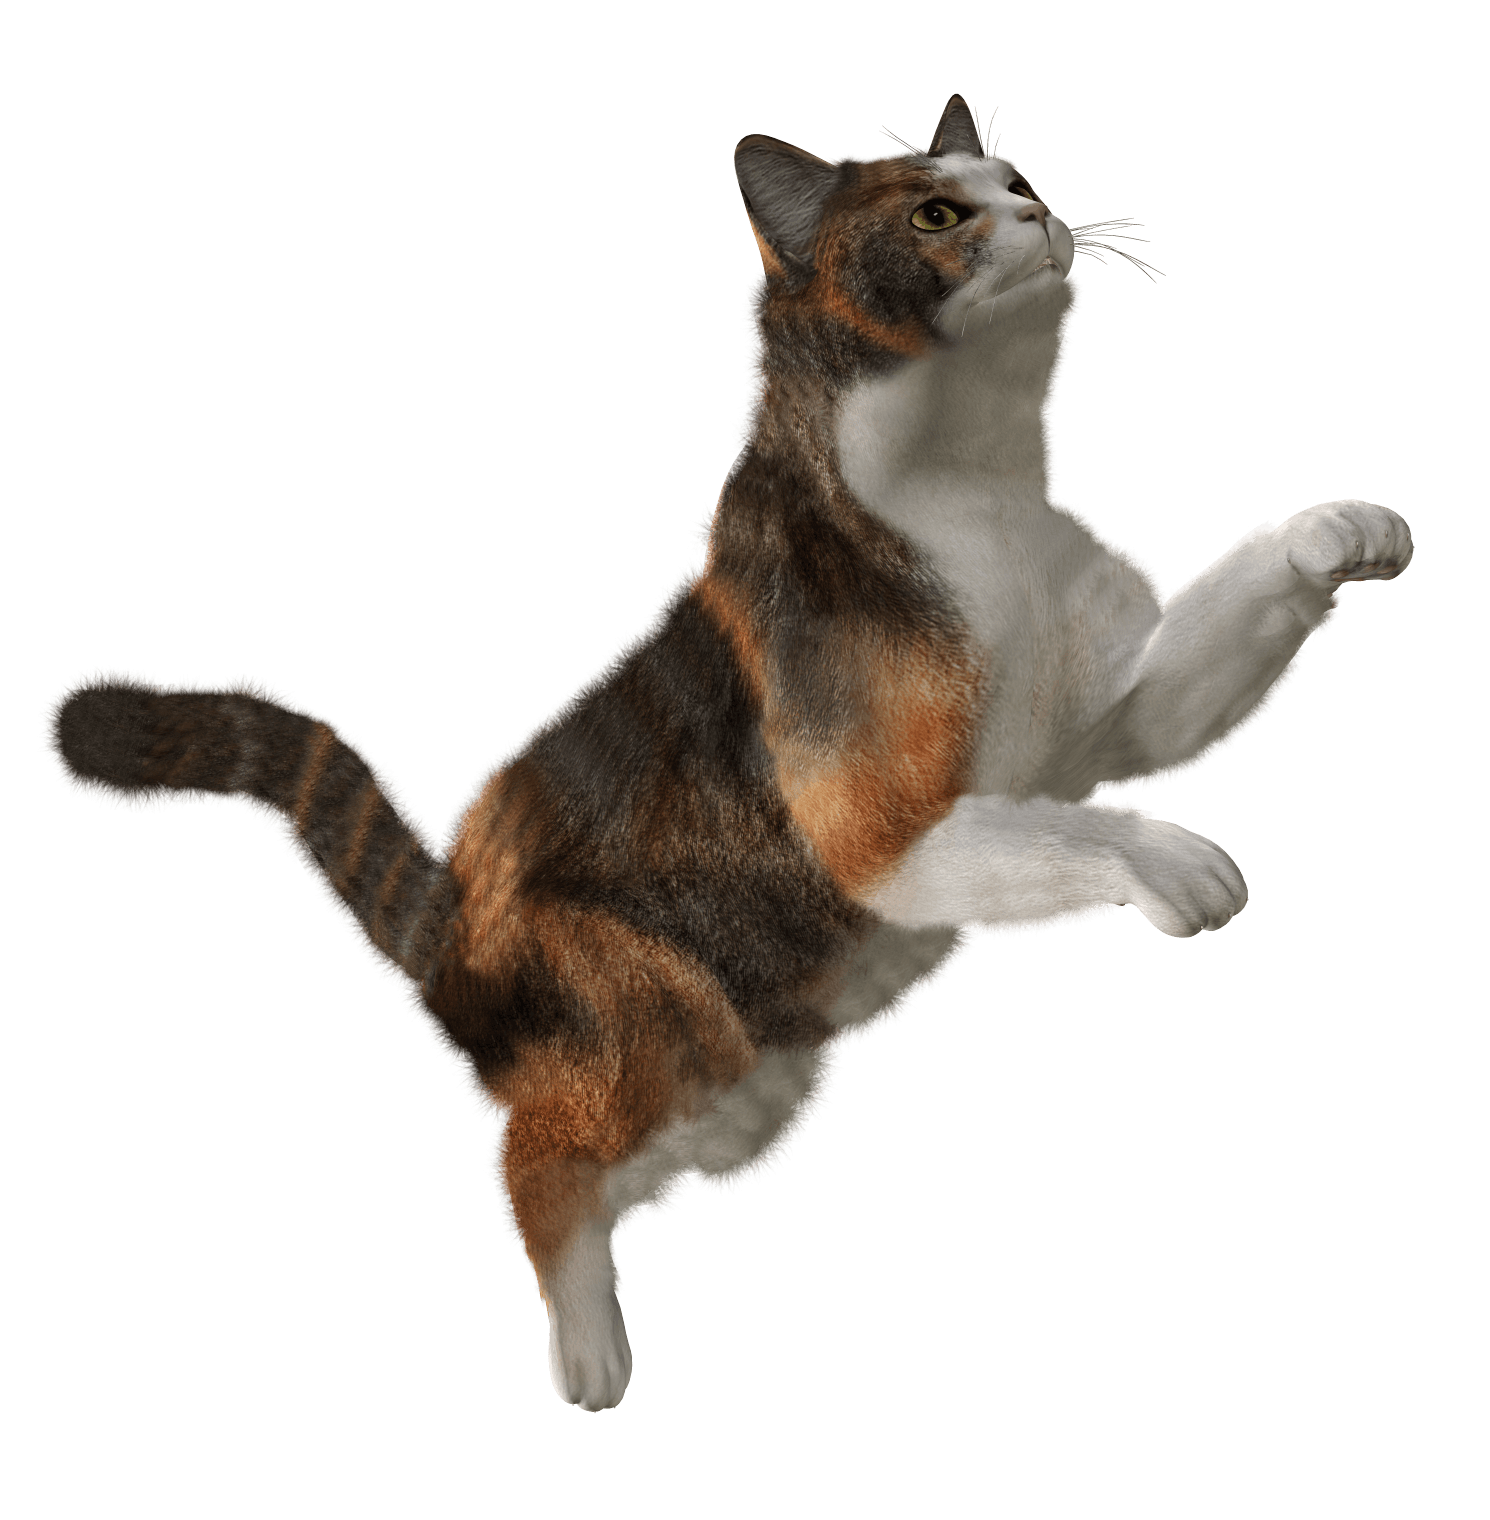 Cute Cat Png Image Download Picture Kitten.